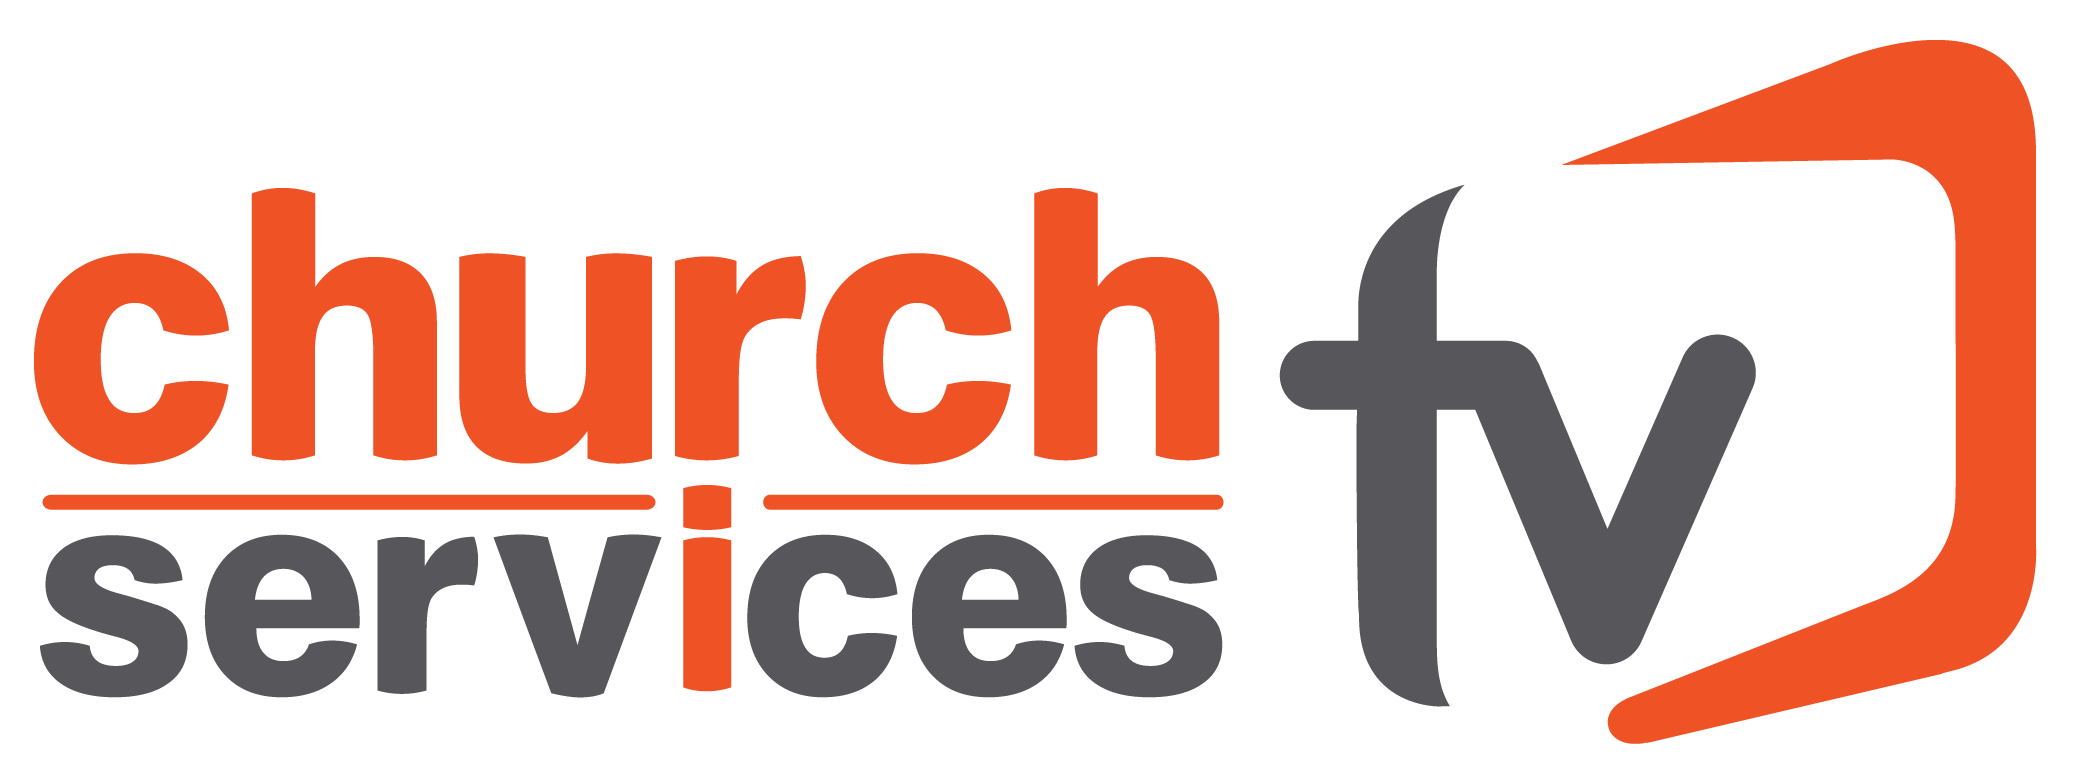 ChurchServices tv live mass and services from Churches in the UK and